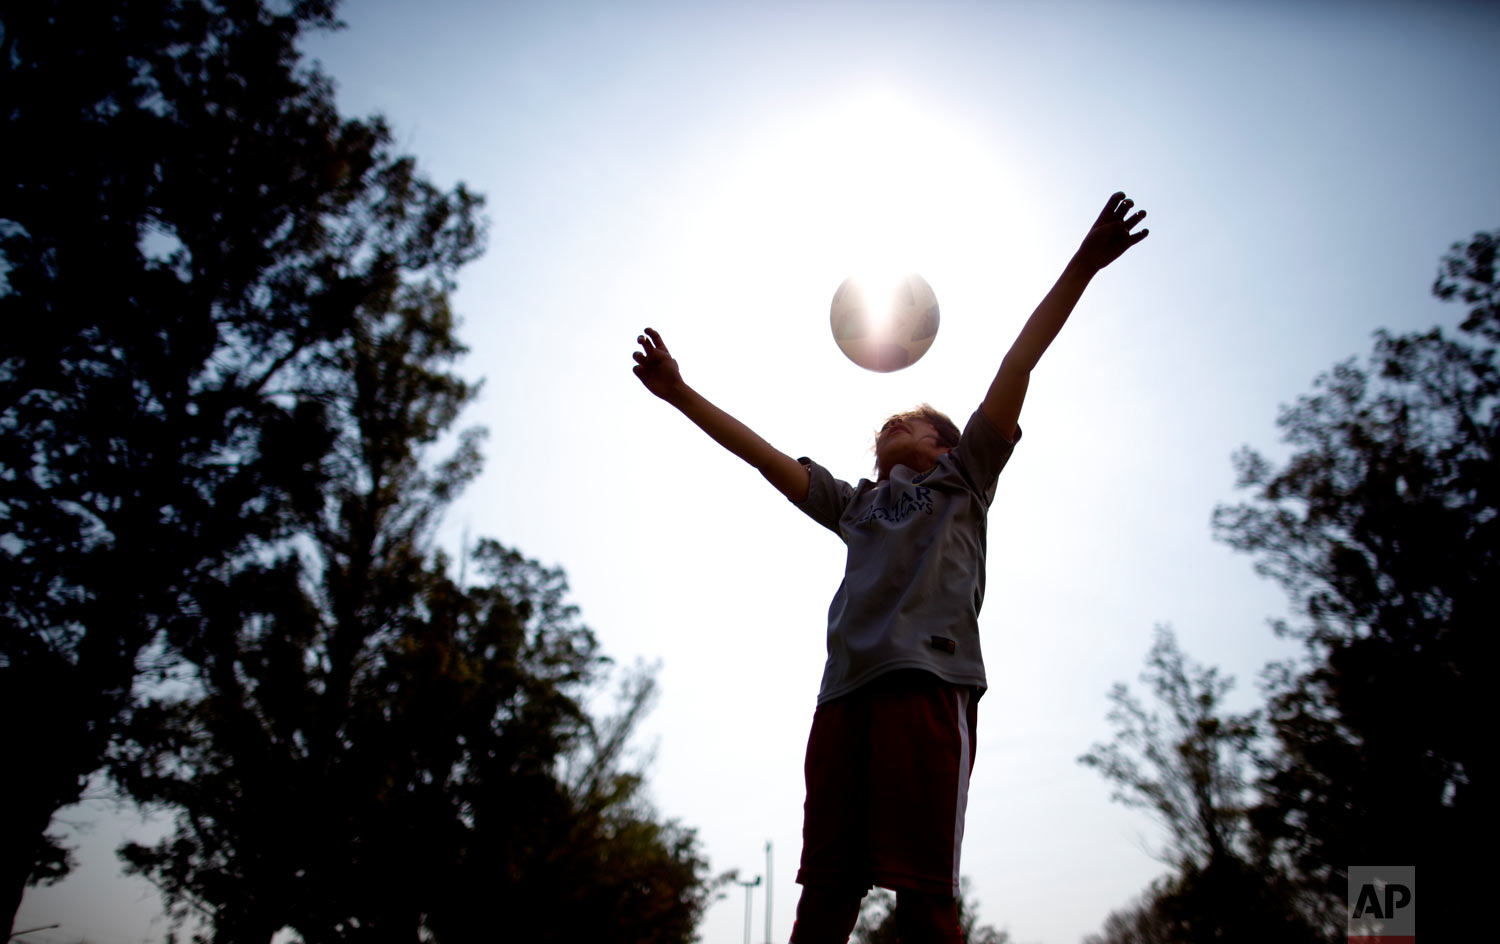 """Candelaria Cabrera plays with a soccer ball in Chabas, Argentina on Saturday, Sept. 8, 2018. """"Cande,"""" as she is known by friends and family, is the only girl playing in a children's soccer league in the southern part of Argentina's Santa Fe province, birthplace of stars including Lionel Messi, Gabriel Batistuta and Jorge Valdano. (AP Photo/Natacha Pisarenko)"""